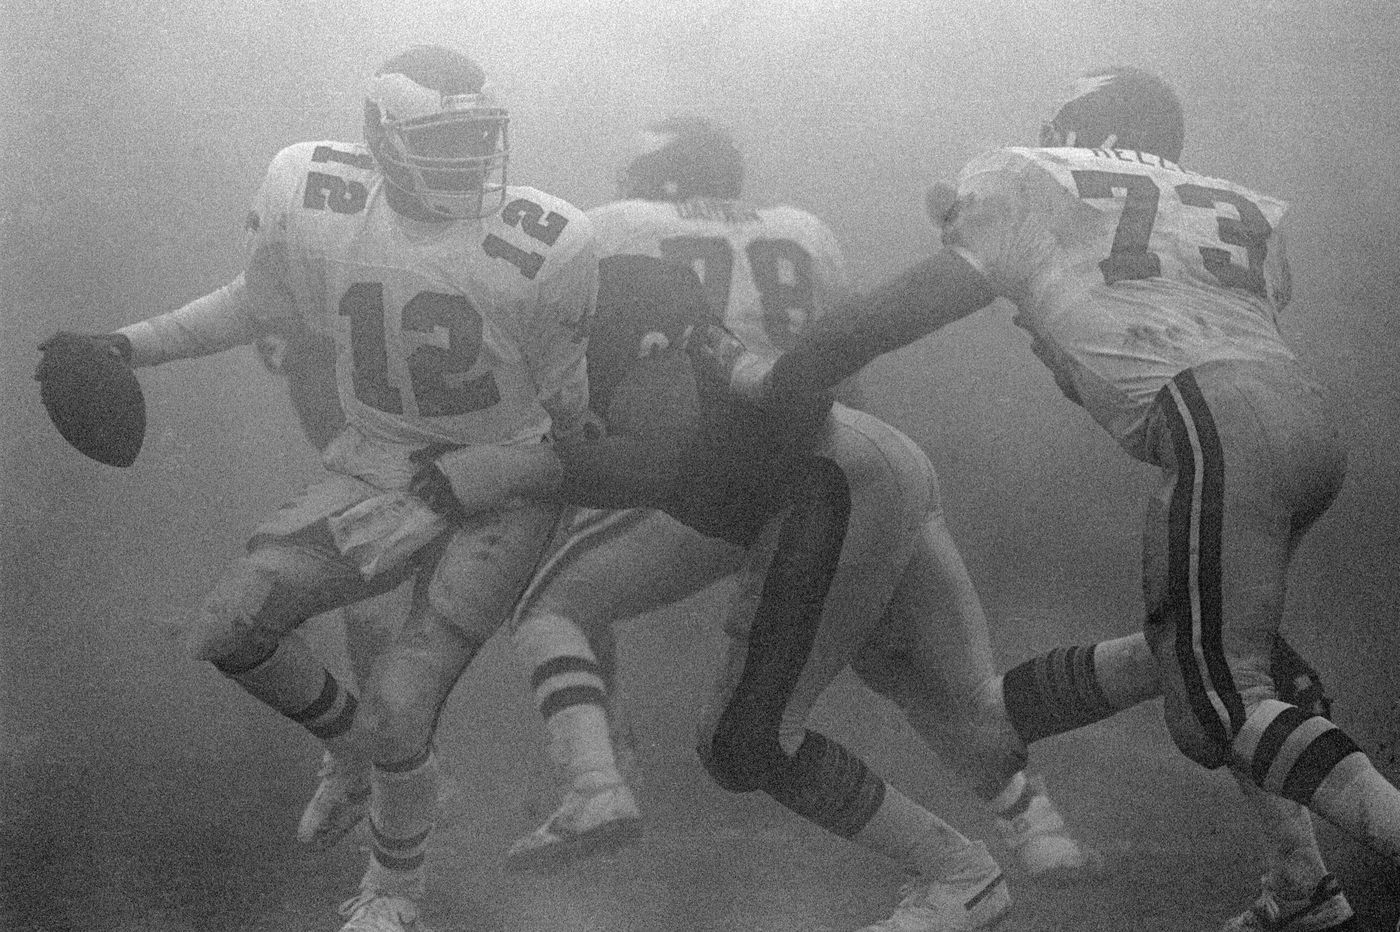 As Eagles and Bears prepare for another playoff matchup, looking back on the bizarre 1988 Fog Bowl